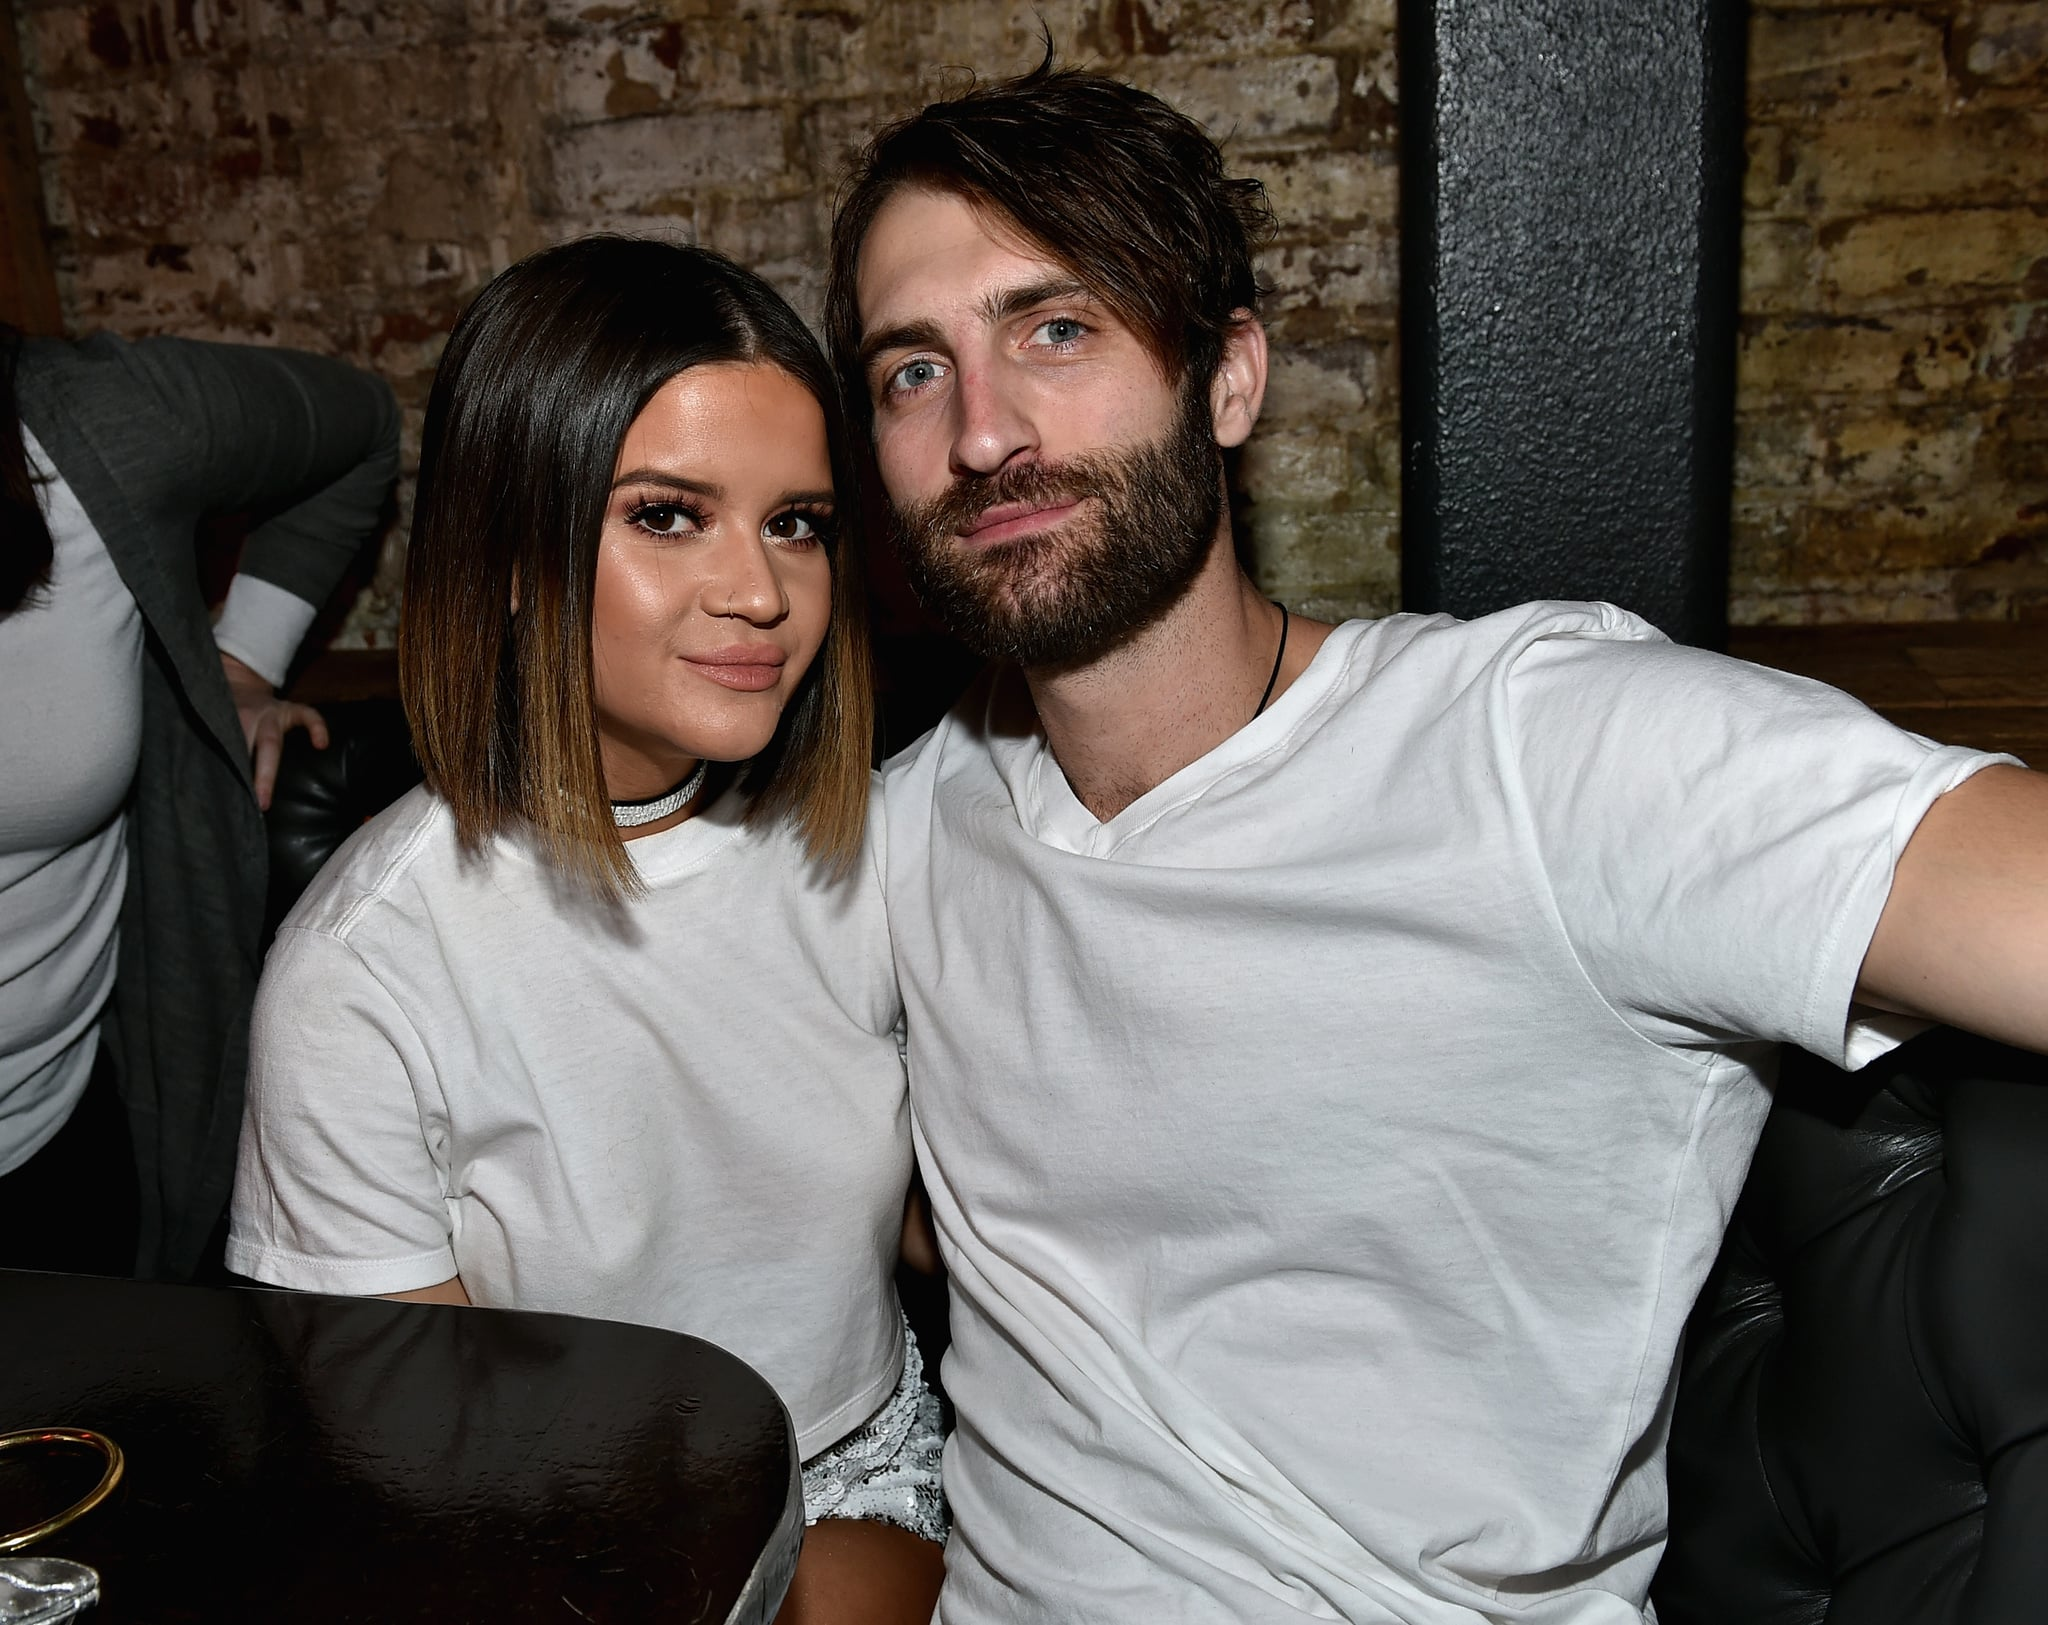 NASHVILLE, TN - JANUARY 14: Maren Morris and Ryan Hurd attend the Nashville Opening of Dierks Bentley's Whiskey Row on January 14, 2018 in Nashville, Tennesse  (Photo by John Shearer/Getty Images for Dierks Bentley's Whiskey Row Nashville)